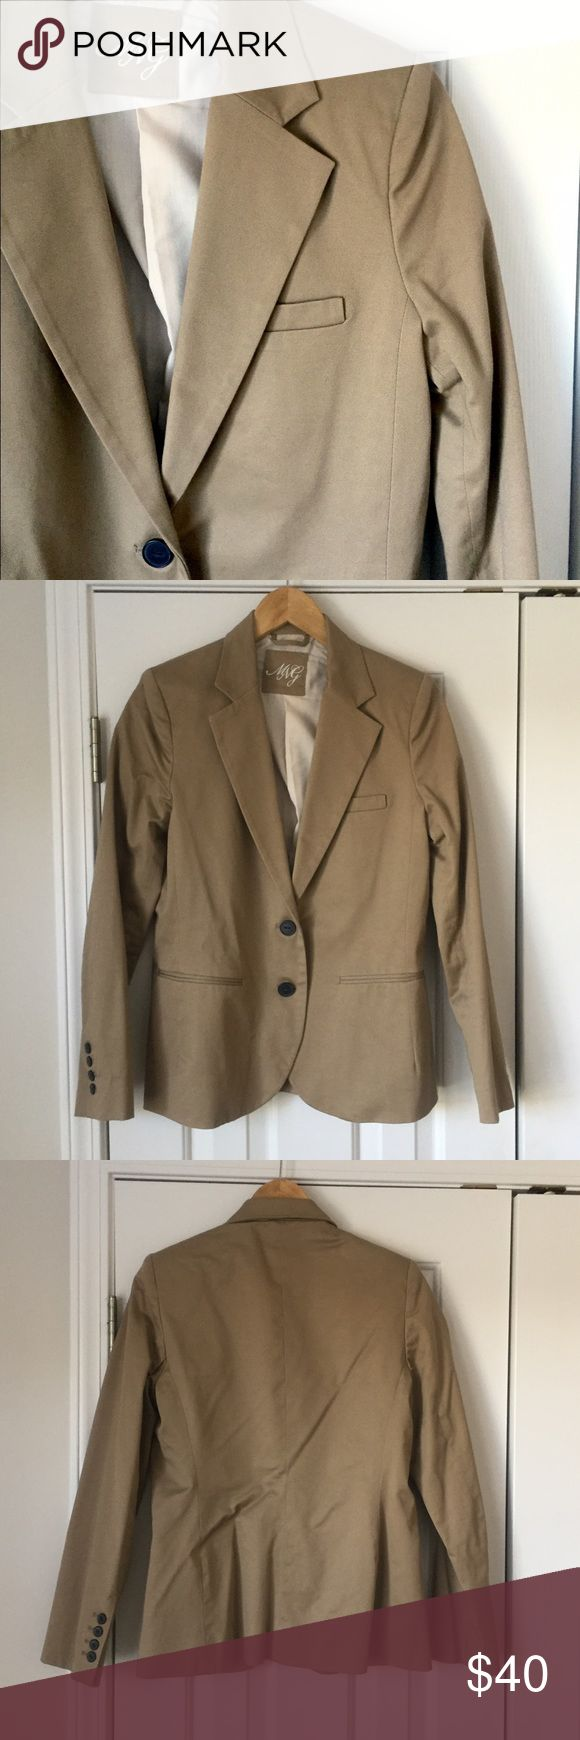 MNG by Mango khaki blazer In great condition! Nicely structured and flattering blazer. Mango Jackets & Coats Blazers